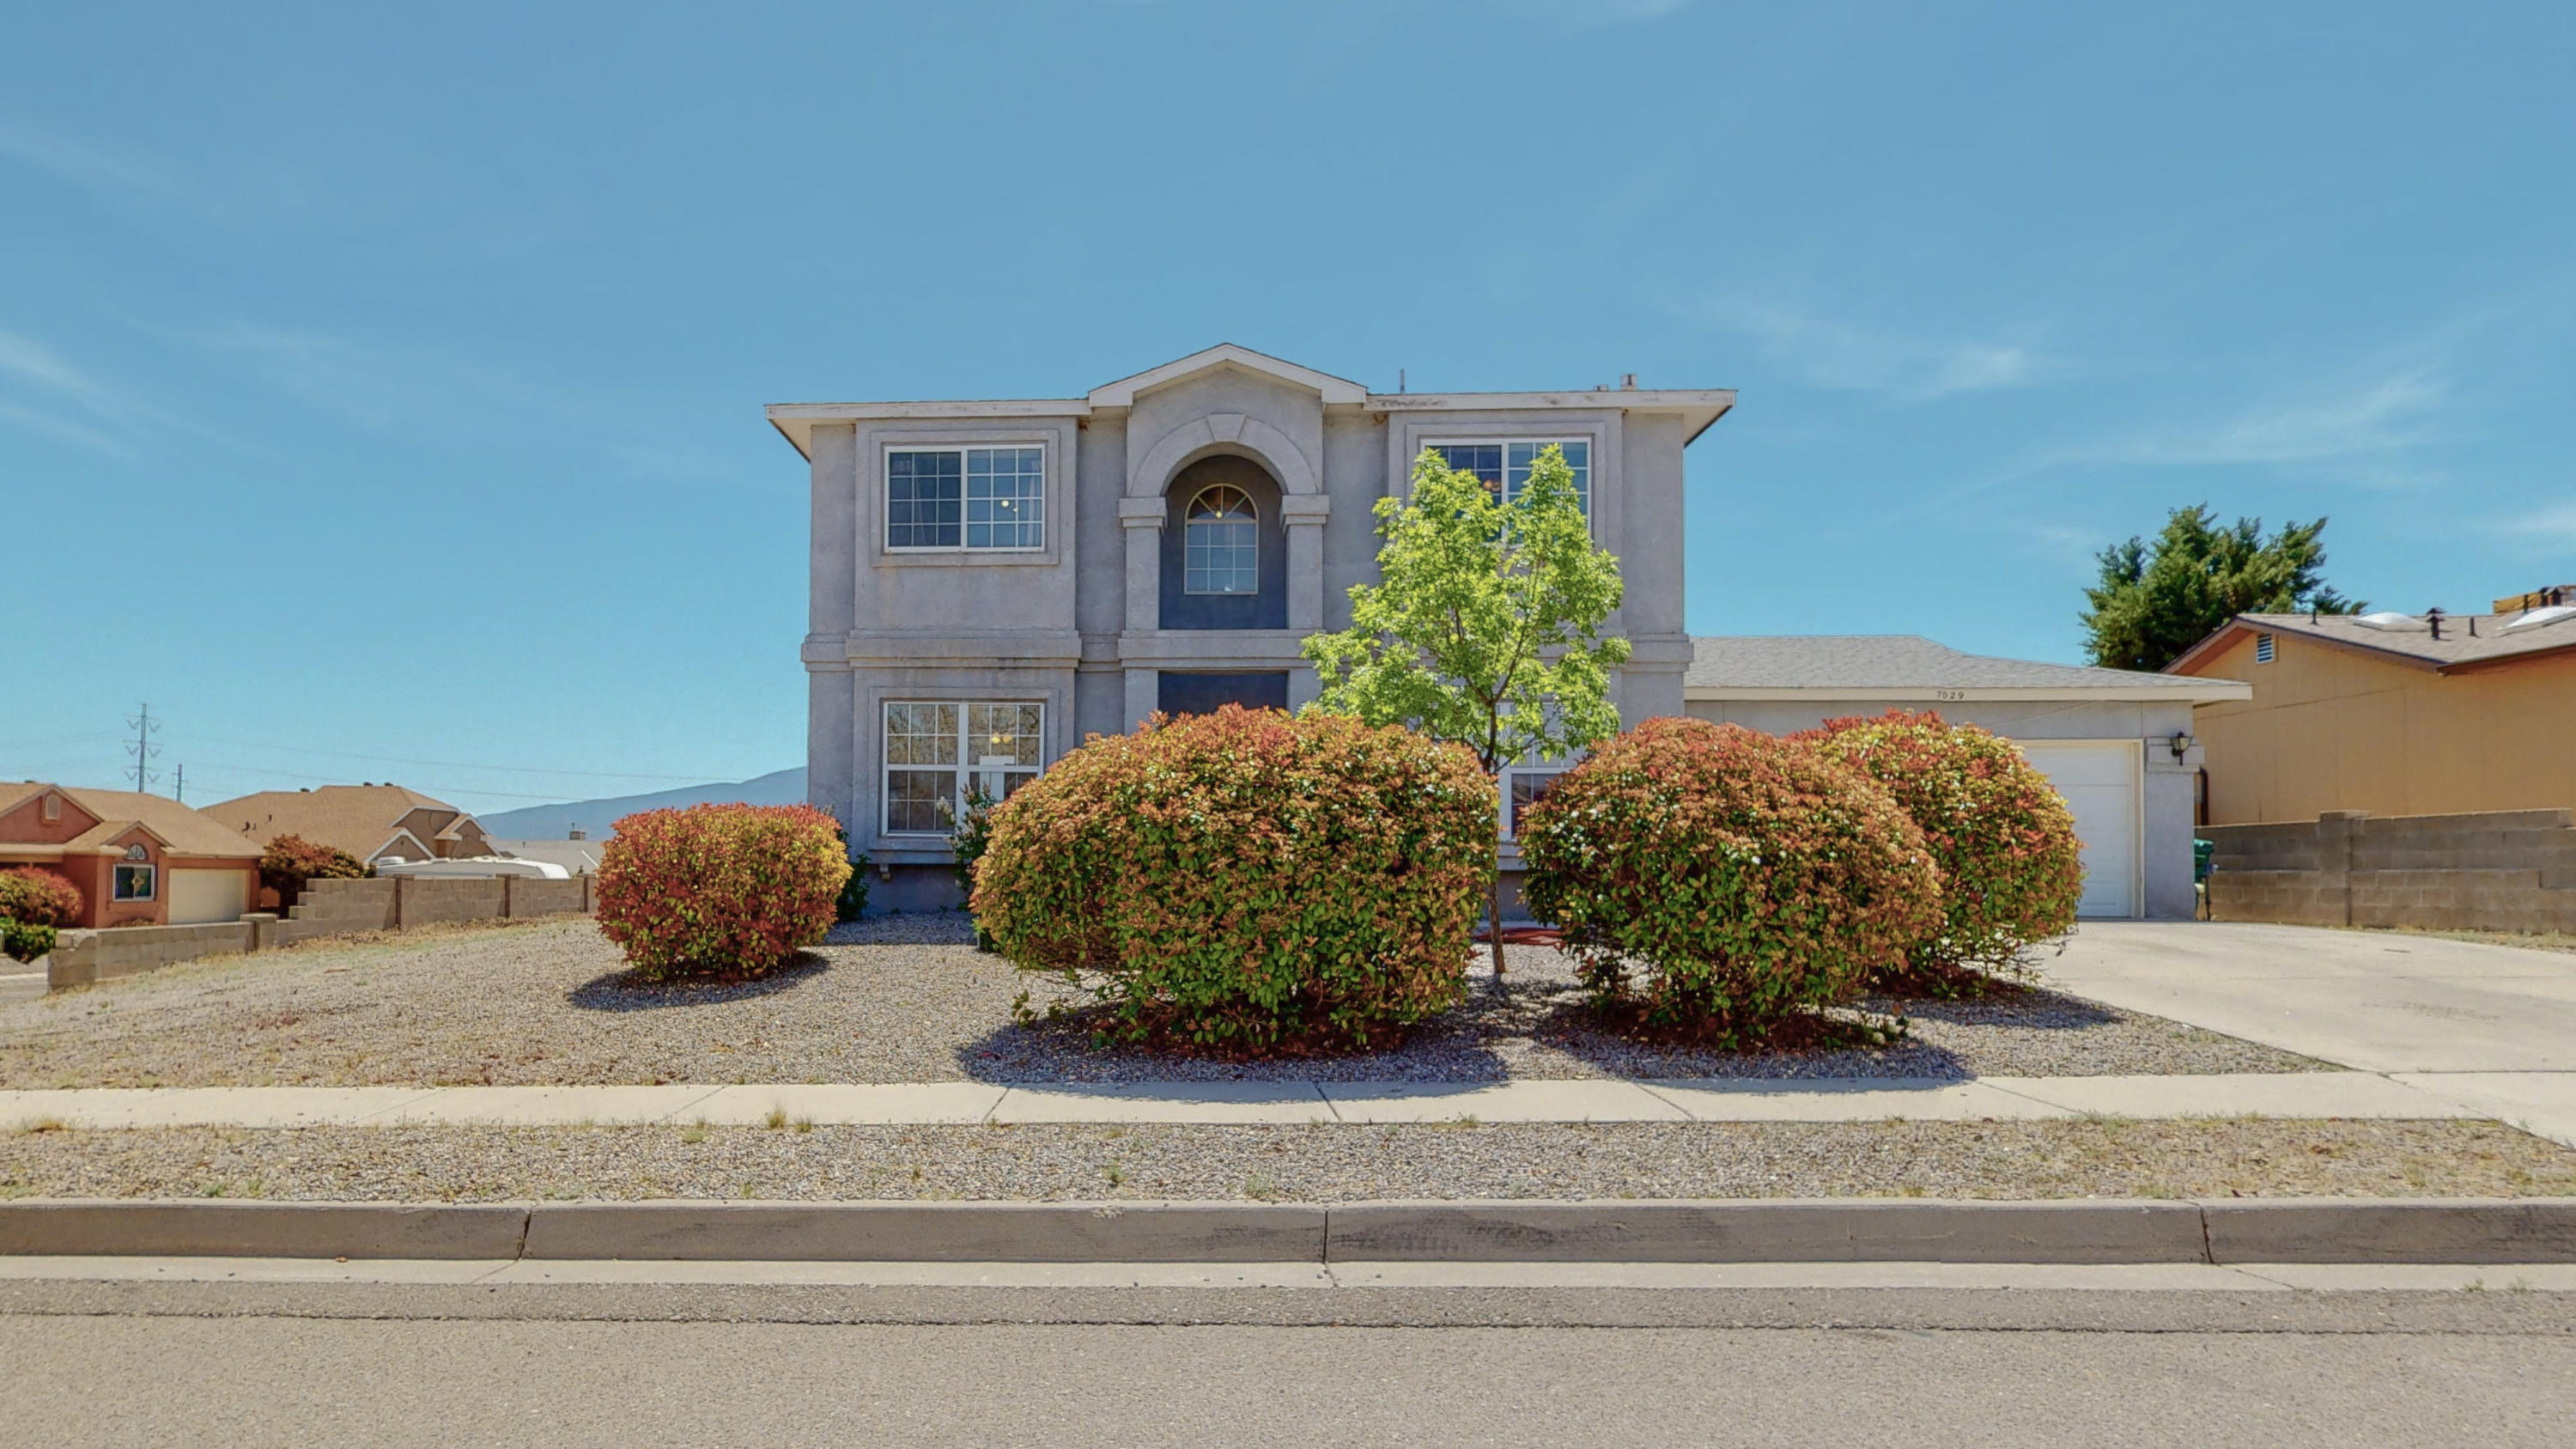 Come enjoy the beautiful view of the Sandia Mountains from the backyard of this two story three bedroom, three bathroom home. It has tile downstairs and brand new carpet upstairs. With refrigerated air and easy access into Albuquerque this home is ready for you!